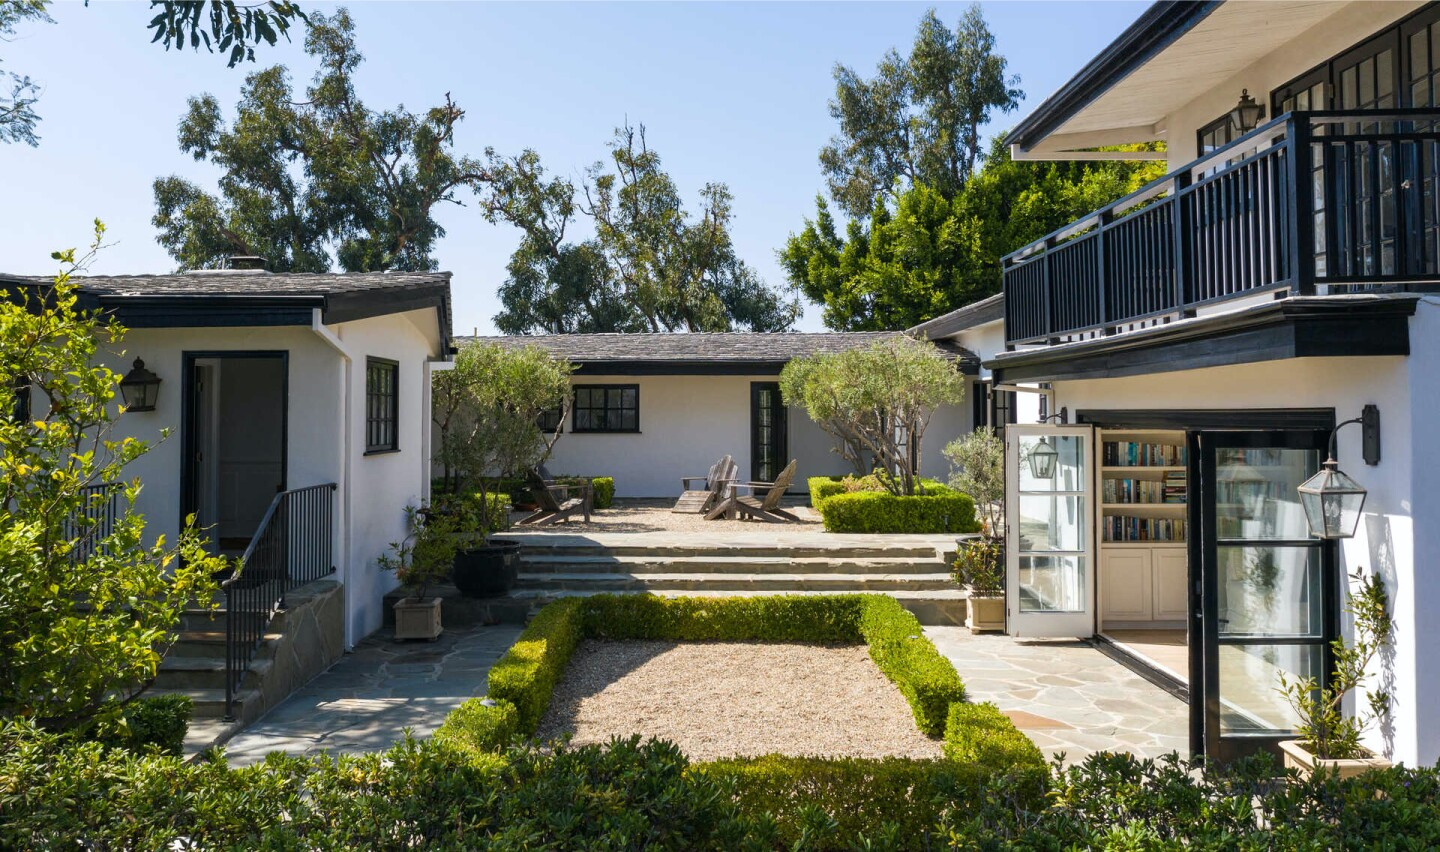 The gated compound includes a traditional-style home built in the 1950s, a guesthouse, swimming pool, spa, courtyard and vegetable gardens.